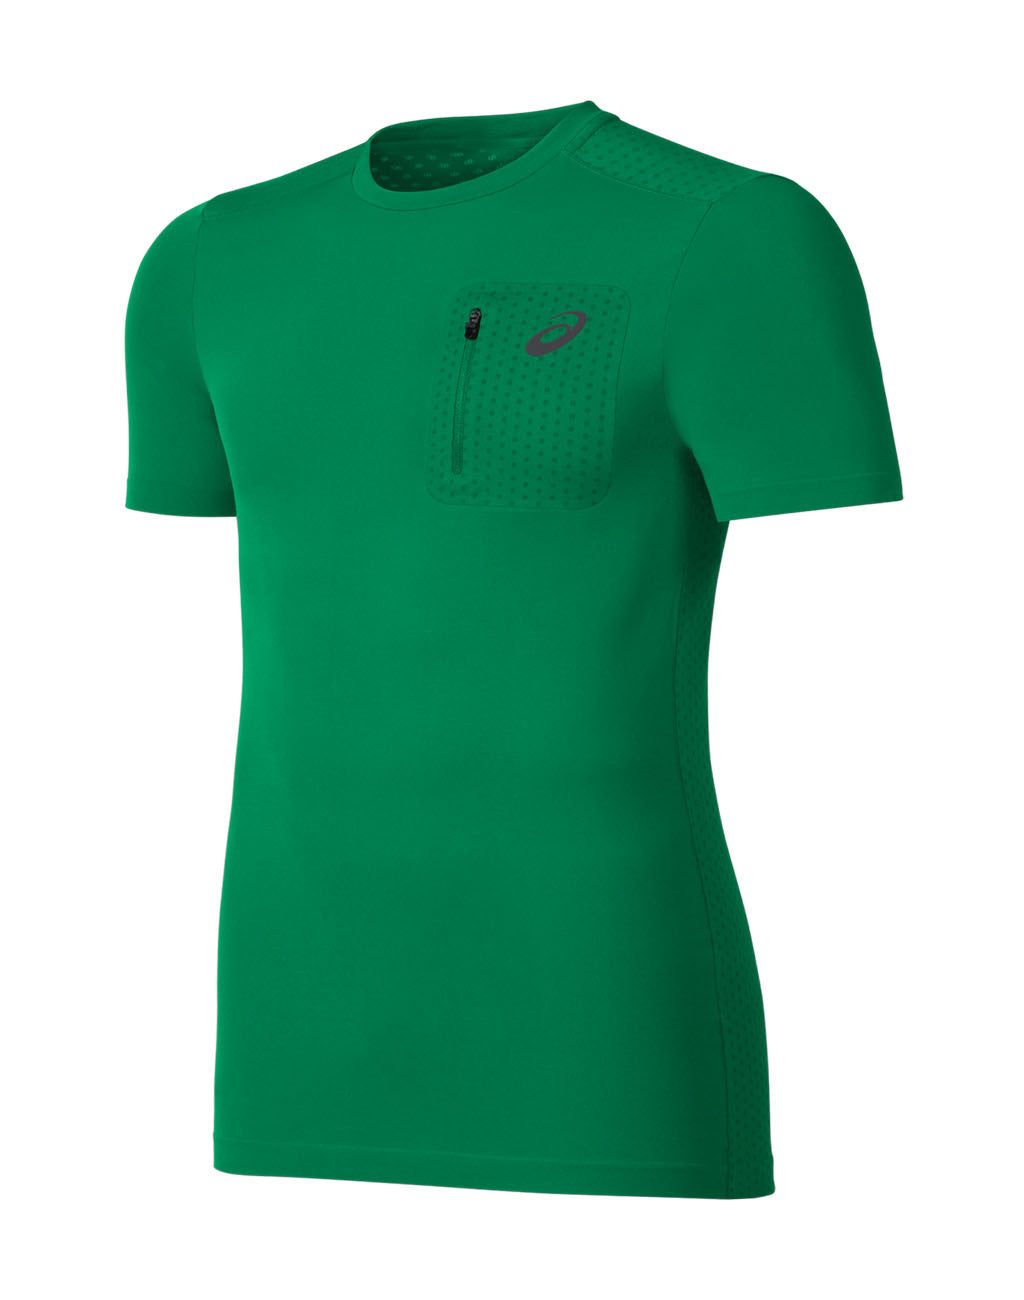 ASICS Elite Short Sleeve Tee (Men's)S_master_image